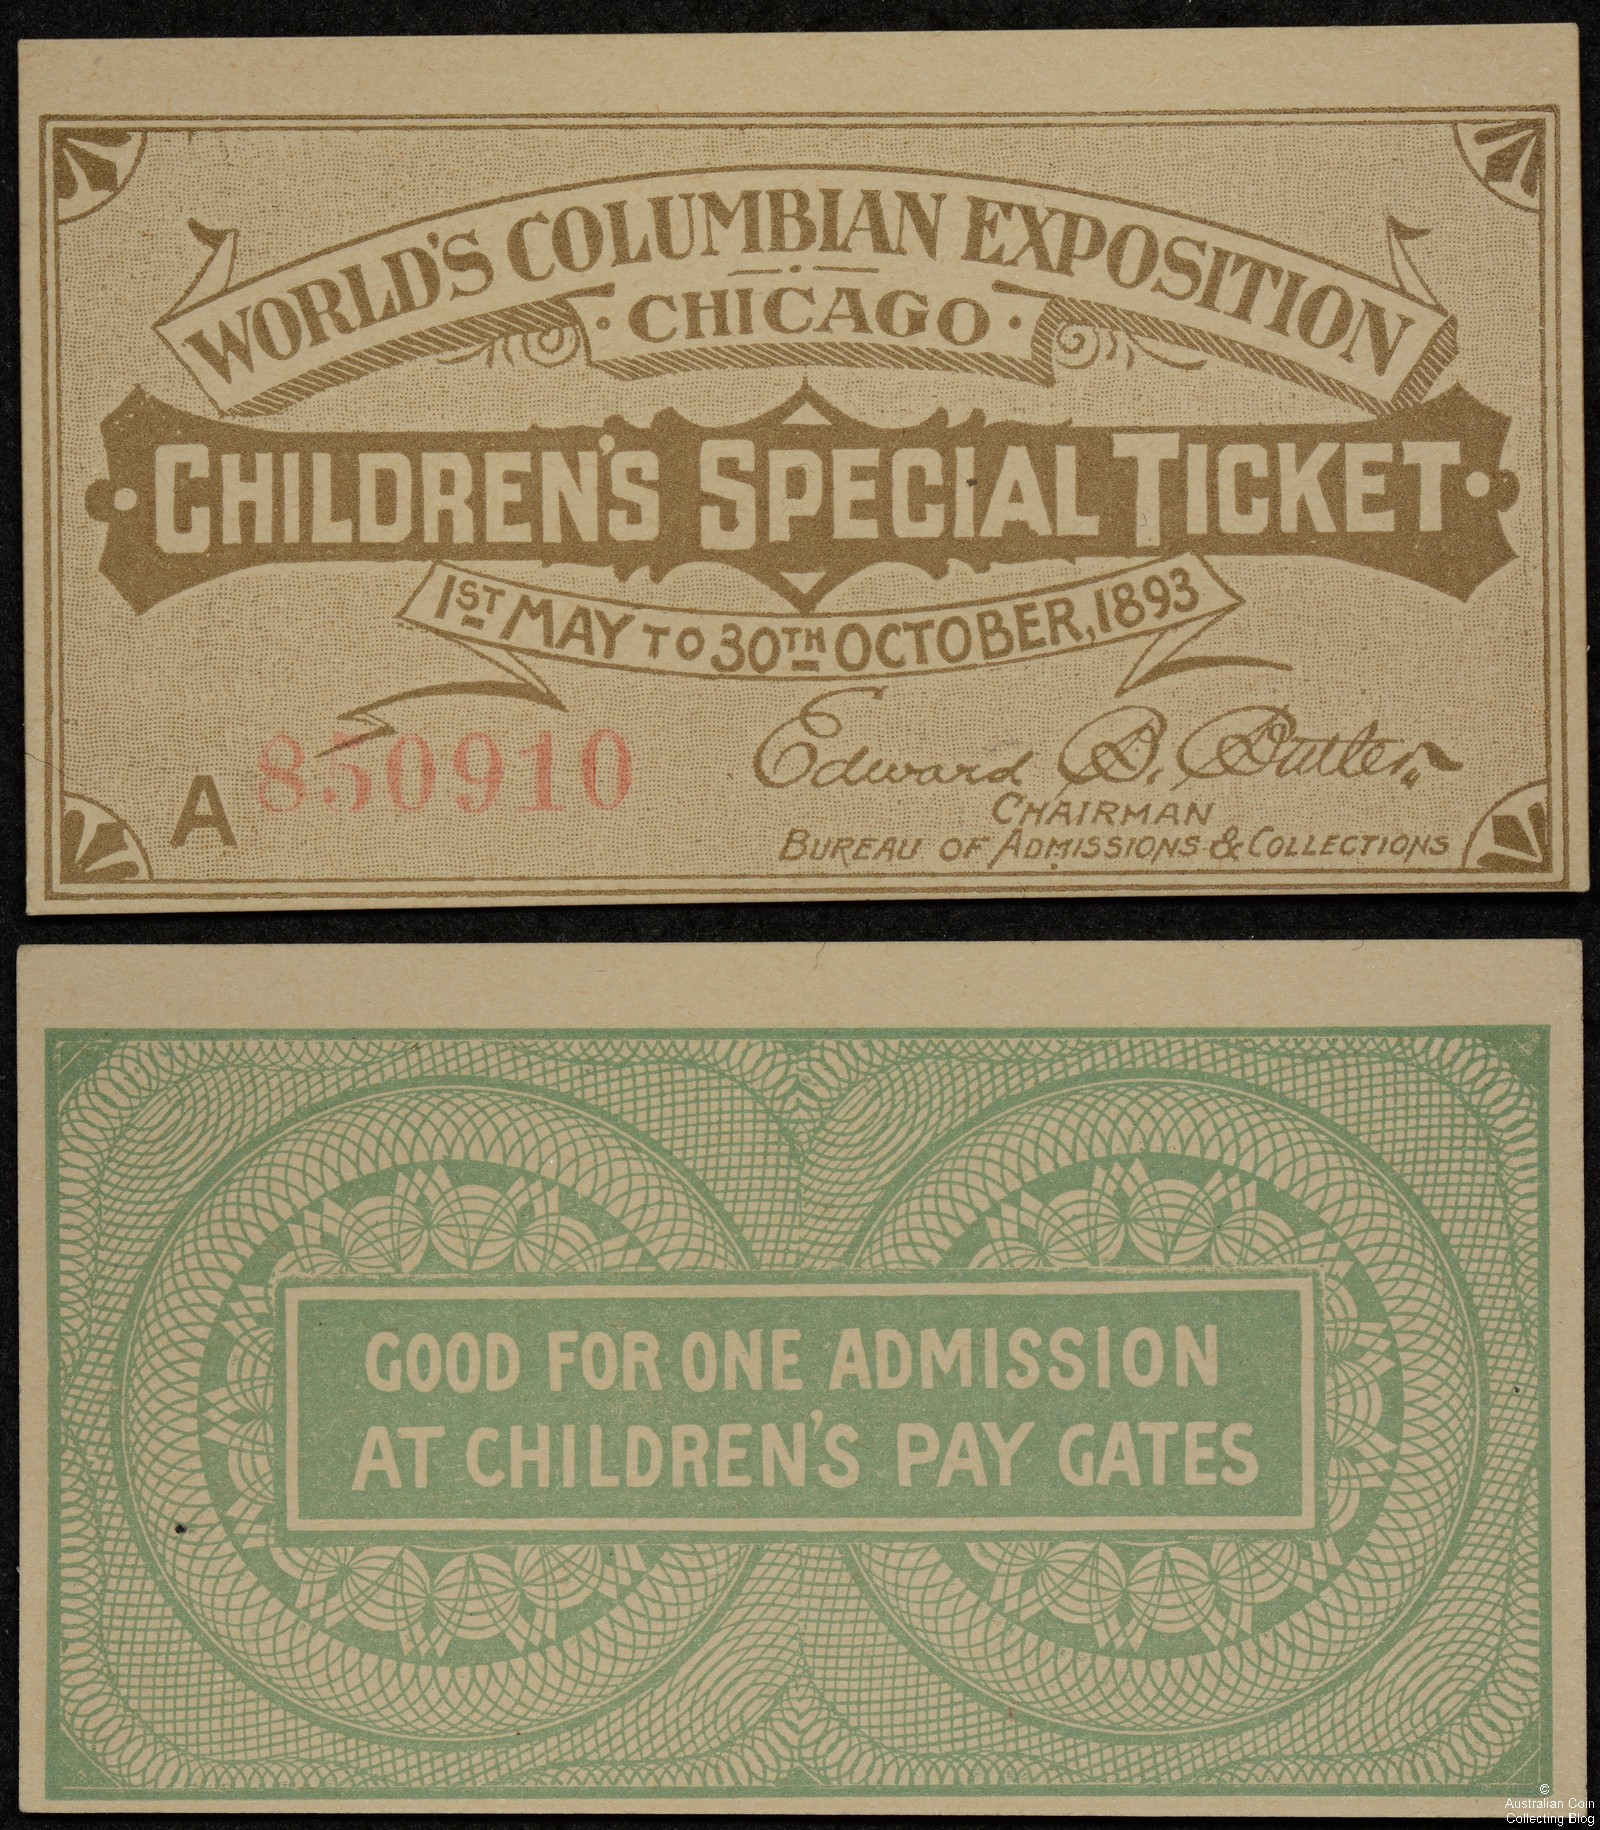 1893 World's Columbian Exposition Children's Special Ticket